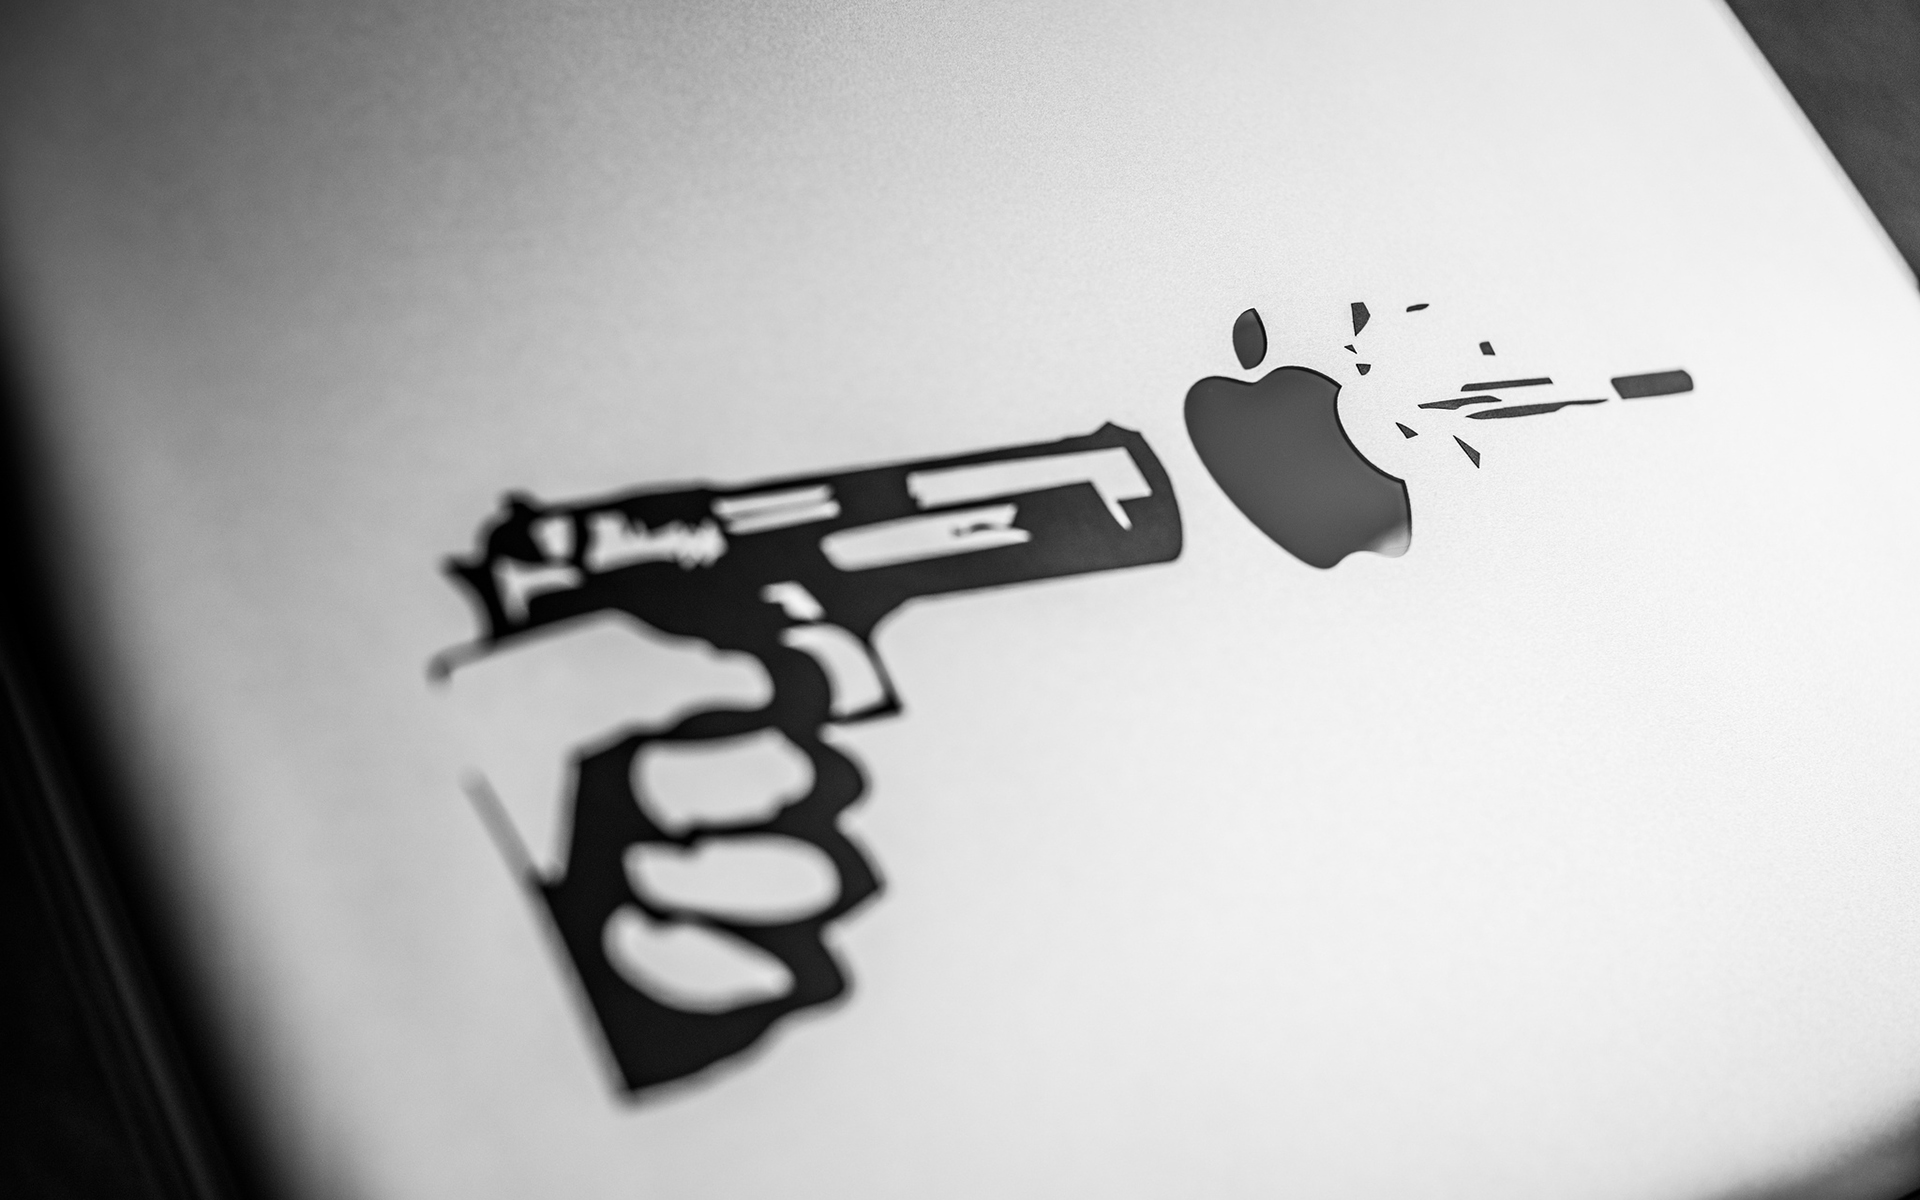 Apple BW computer sadic humor wallpaper | 1920x1200 | 112660